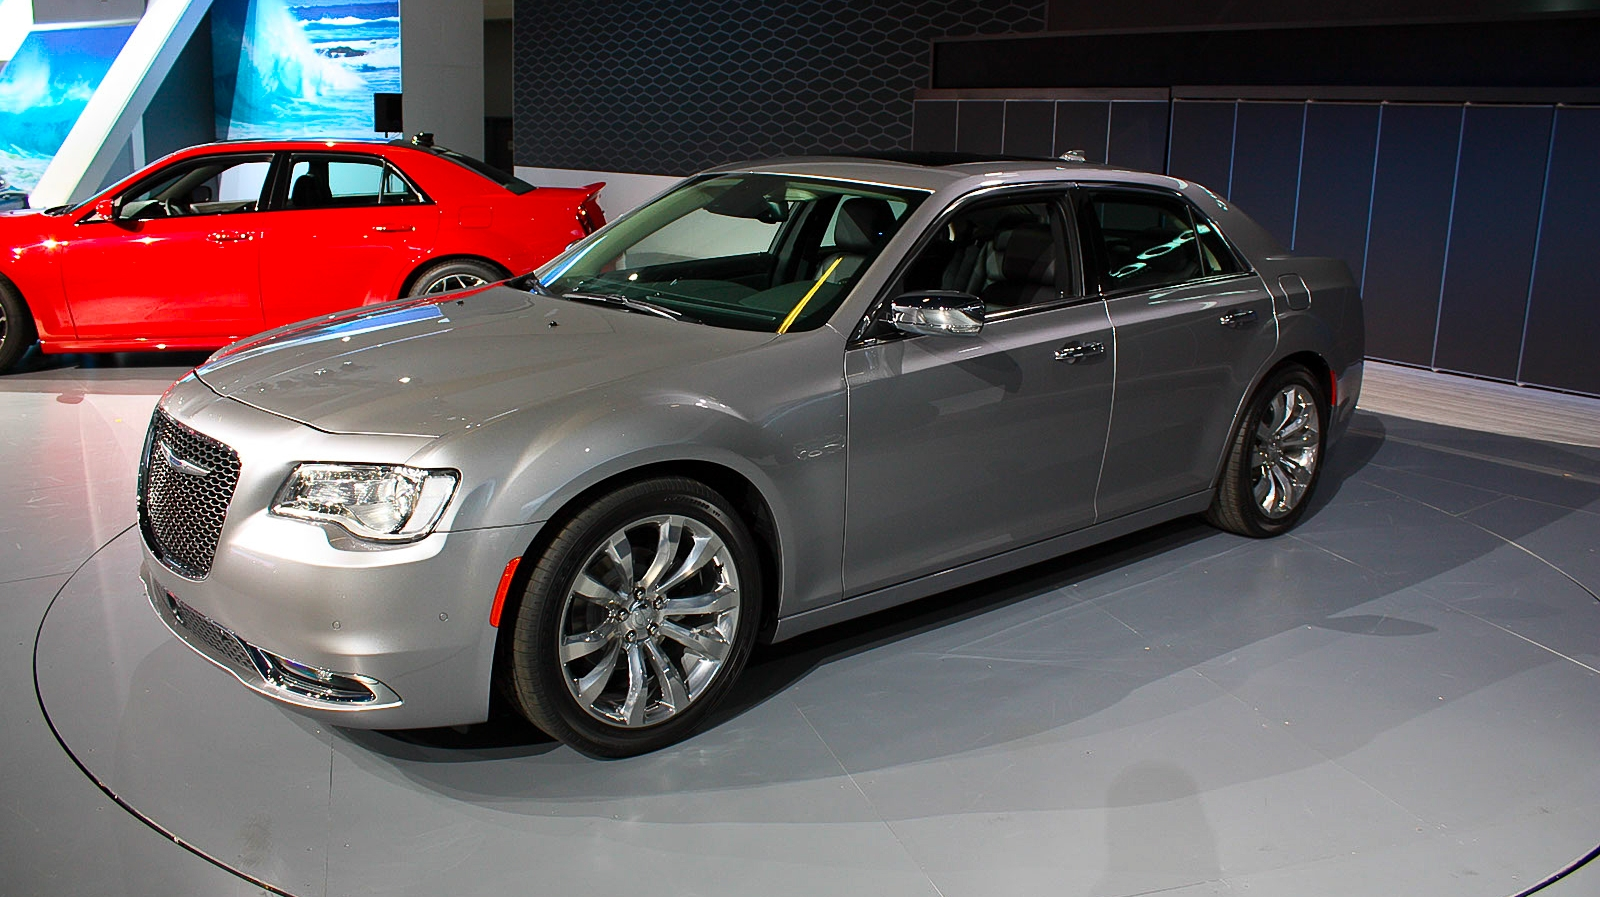 rebuilding american front red chrysler images com icon s forbes sites kbrauer an